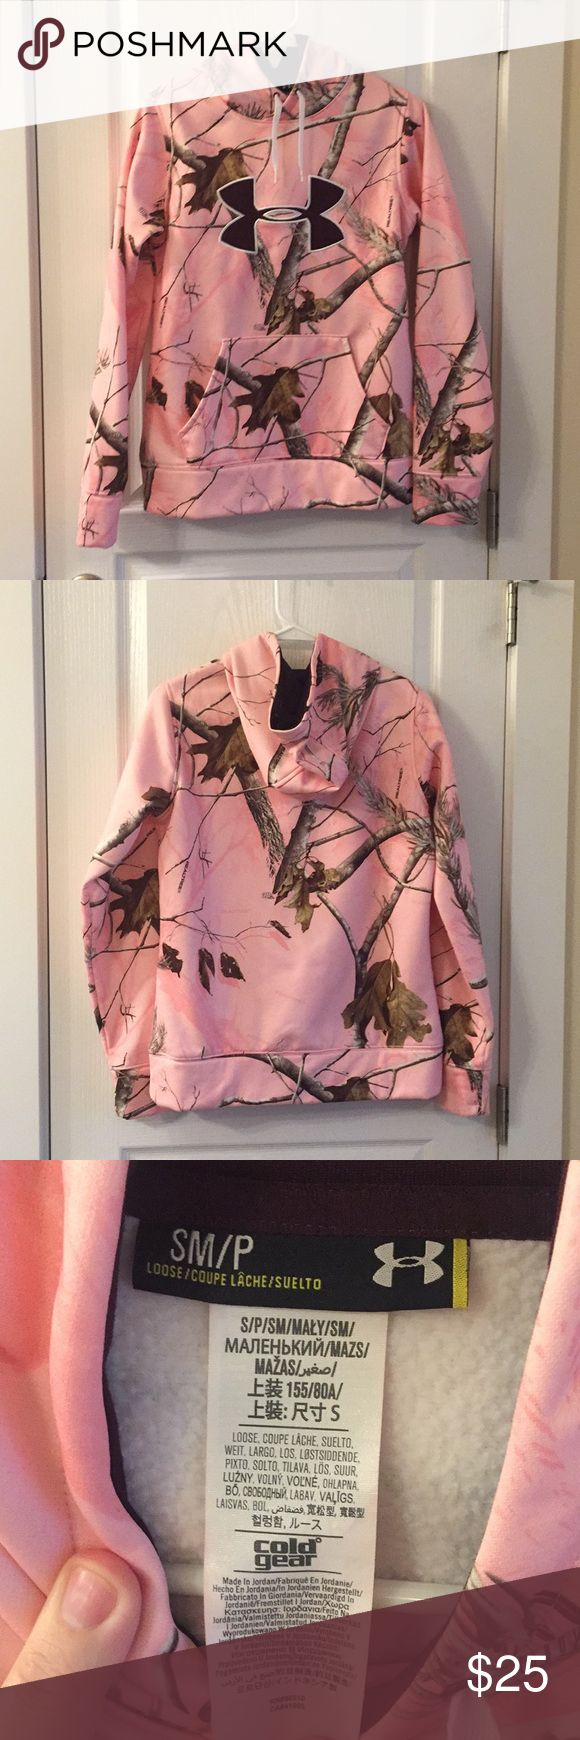 Under Armour RealTree Pink Camo Hoodie Size Small Under Armour RealTree design camo hoodie pullover, sherpa lined, women's size small. This runs small! Perfect condition since it's never been worn only washed. Under Armour Tops Sweatshirts & Hoodies